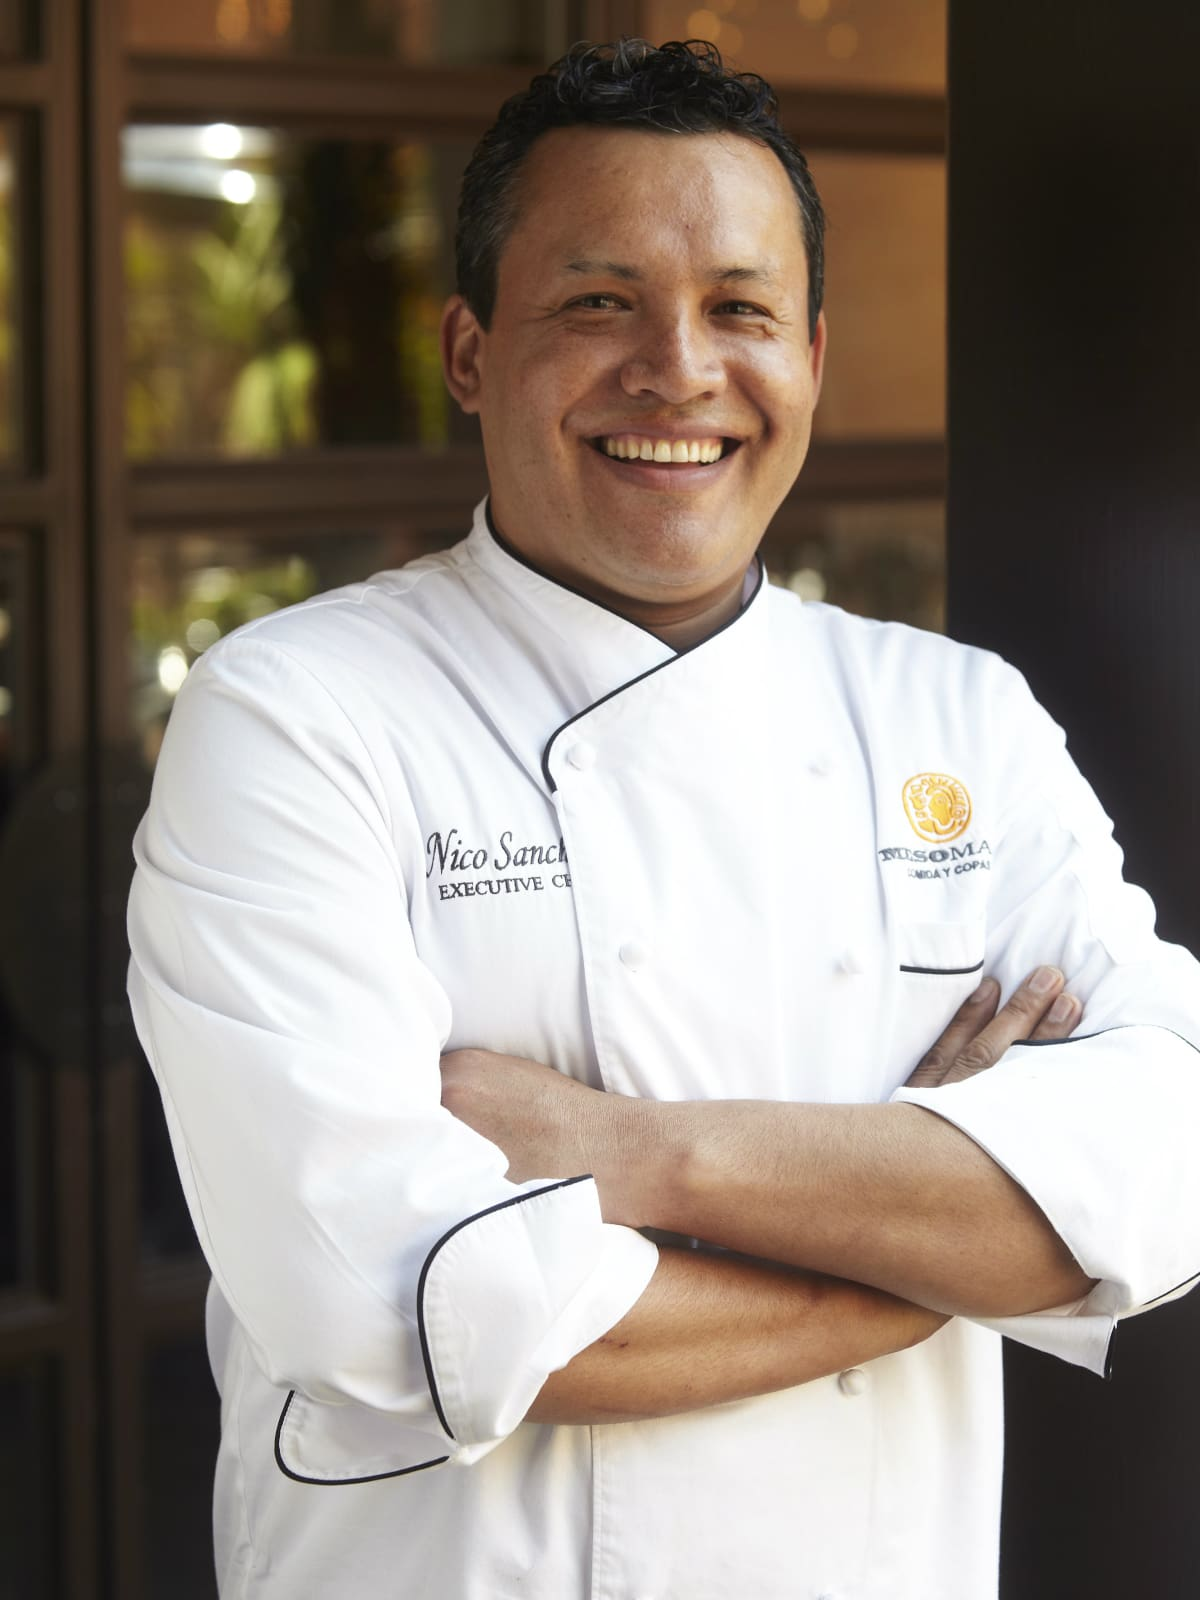 Tastemaker Rising Star Chef nominees add luster to Dallas dining ...